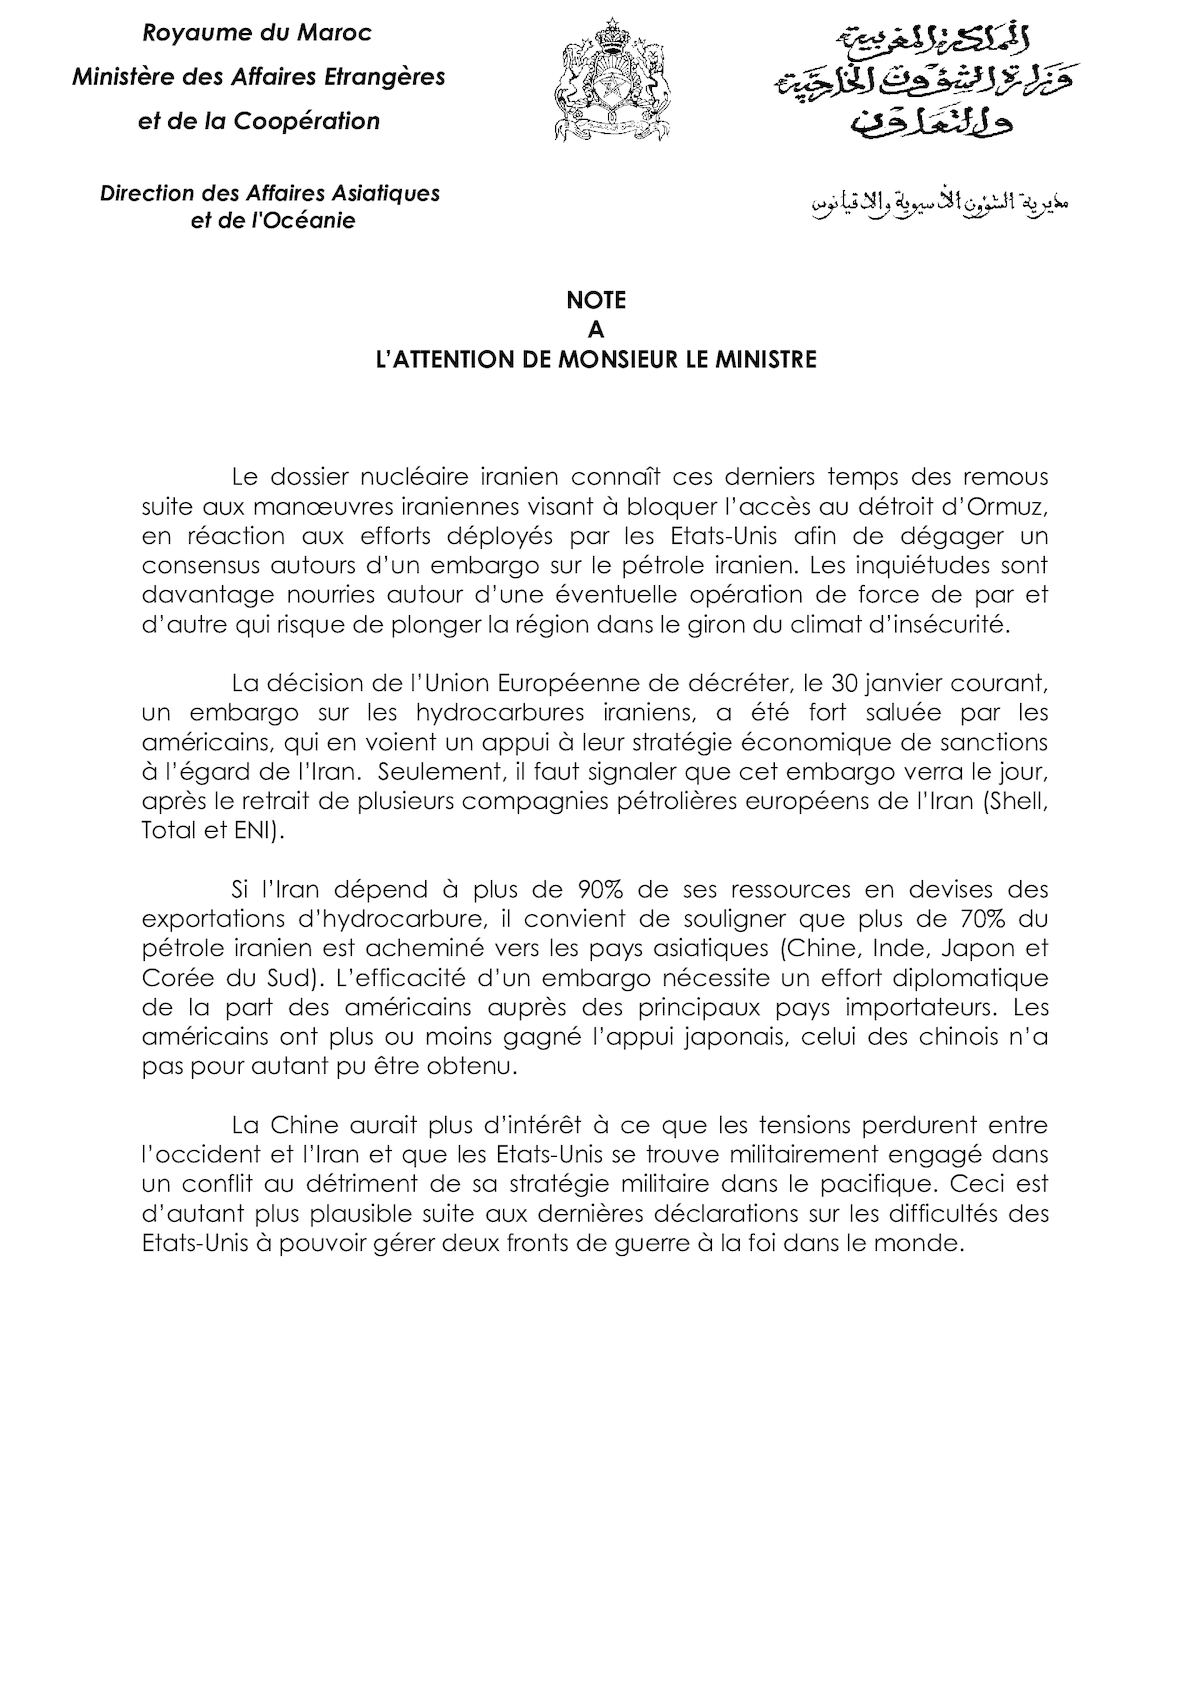 Note Mleministre 01